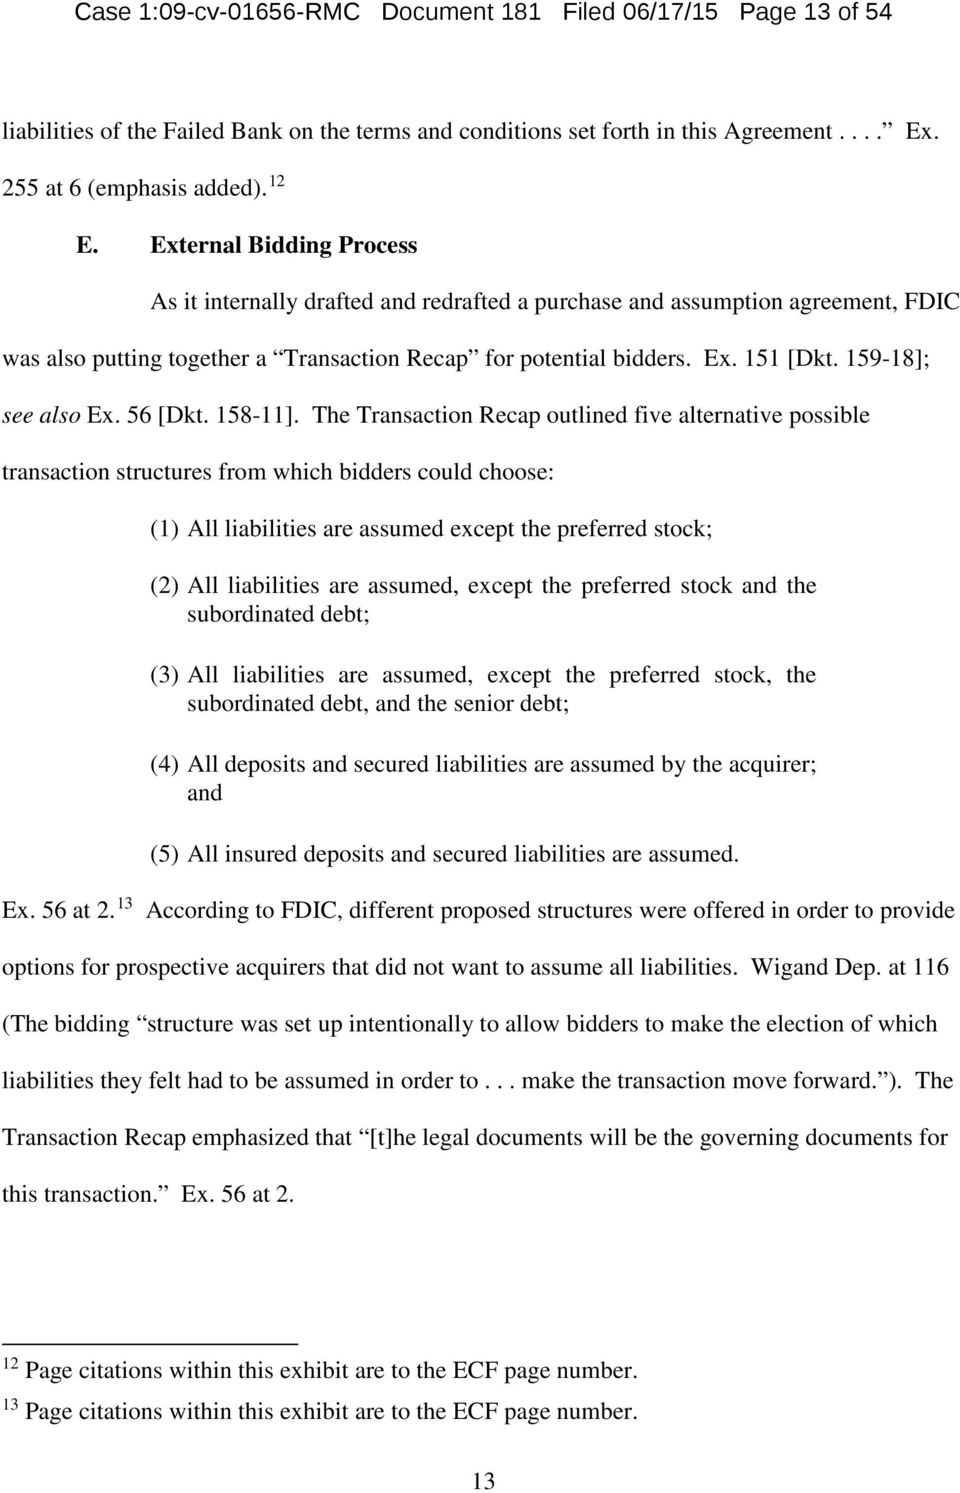 Case 1 09 Cv Rmc Document 181 Filed 06 17 15 Page 1 Of 54 United